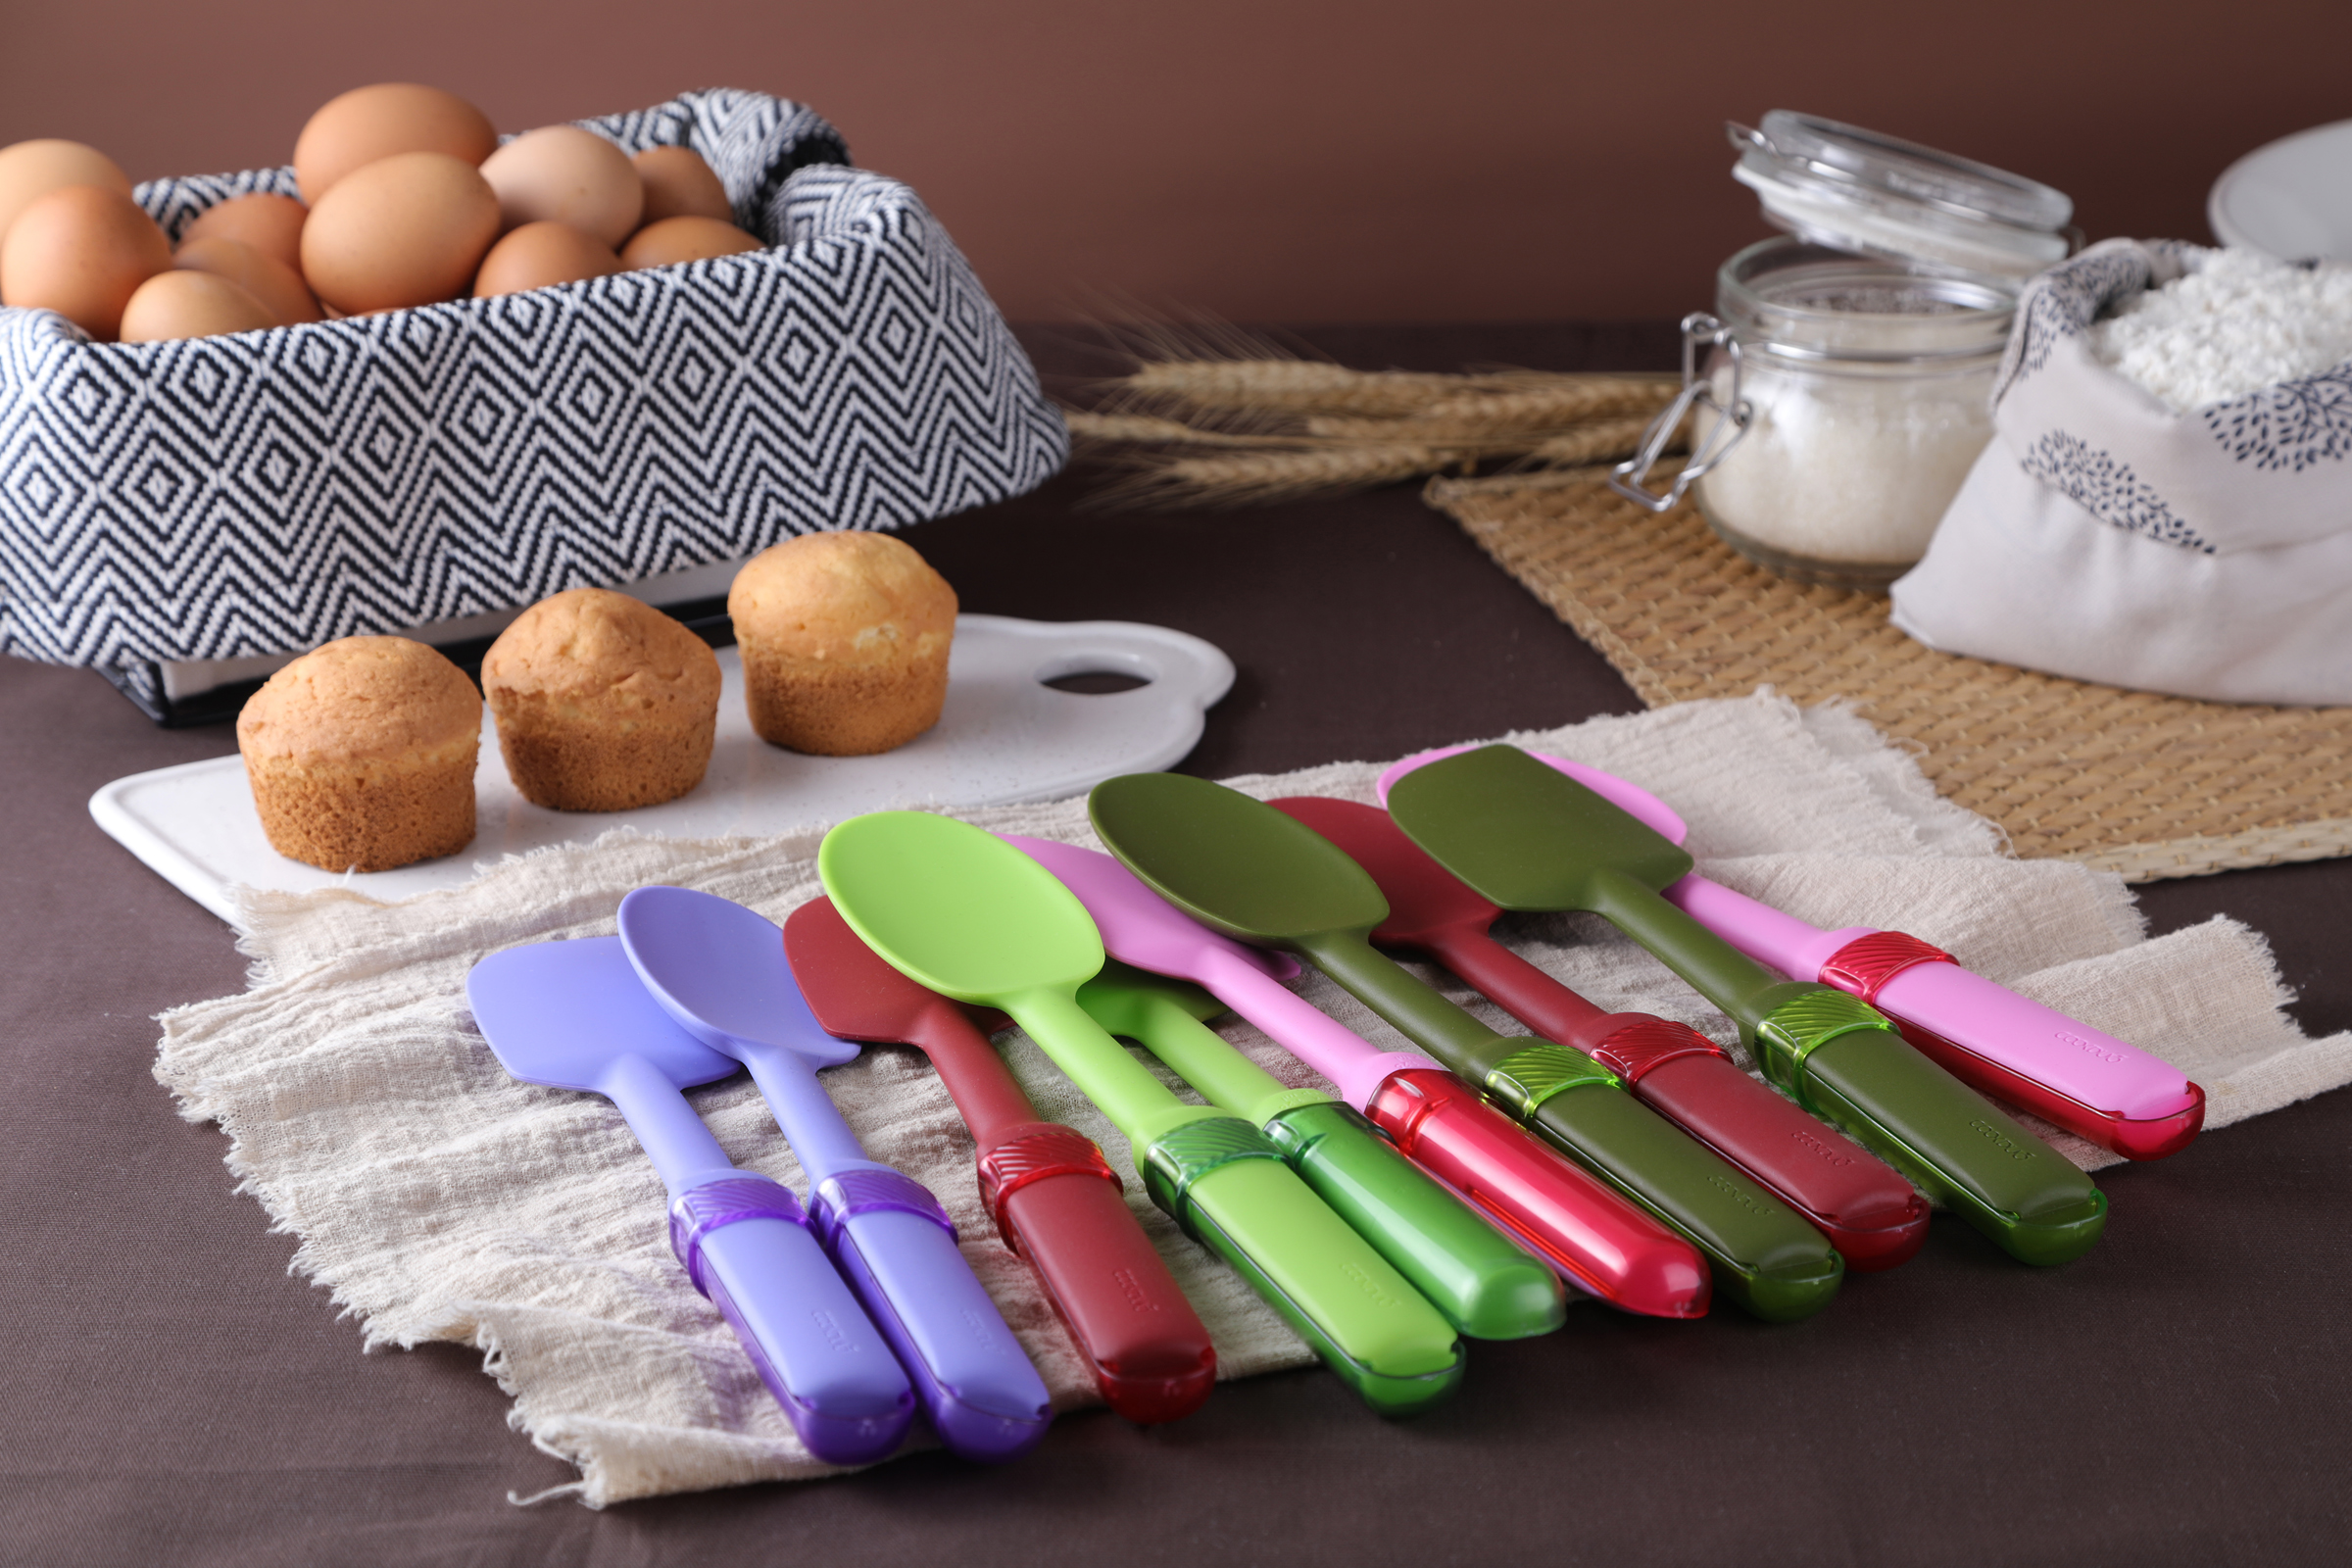 Mix & Measure - Silicone spatula and spoon with adjustable measuring spoon built into the handle